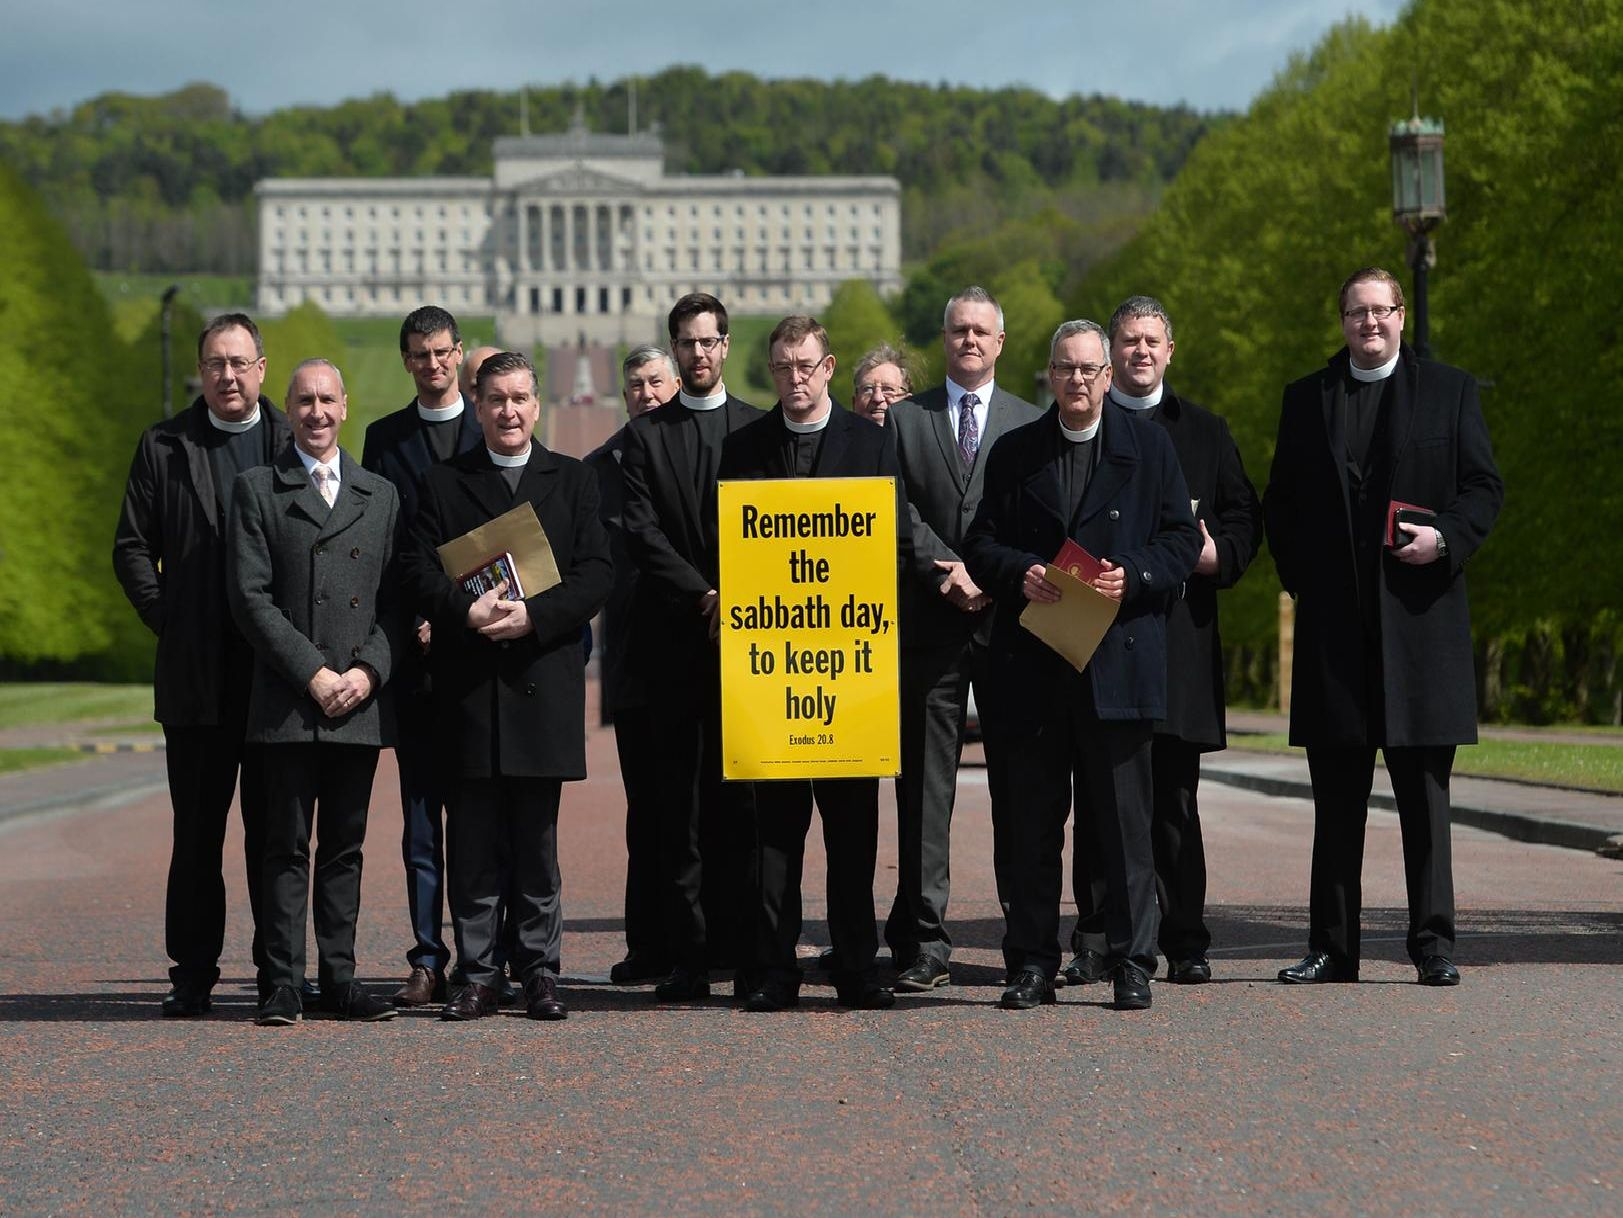 An image from the protest staged by members of the Free Presbyterian Church in Stormont on Friday